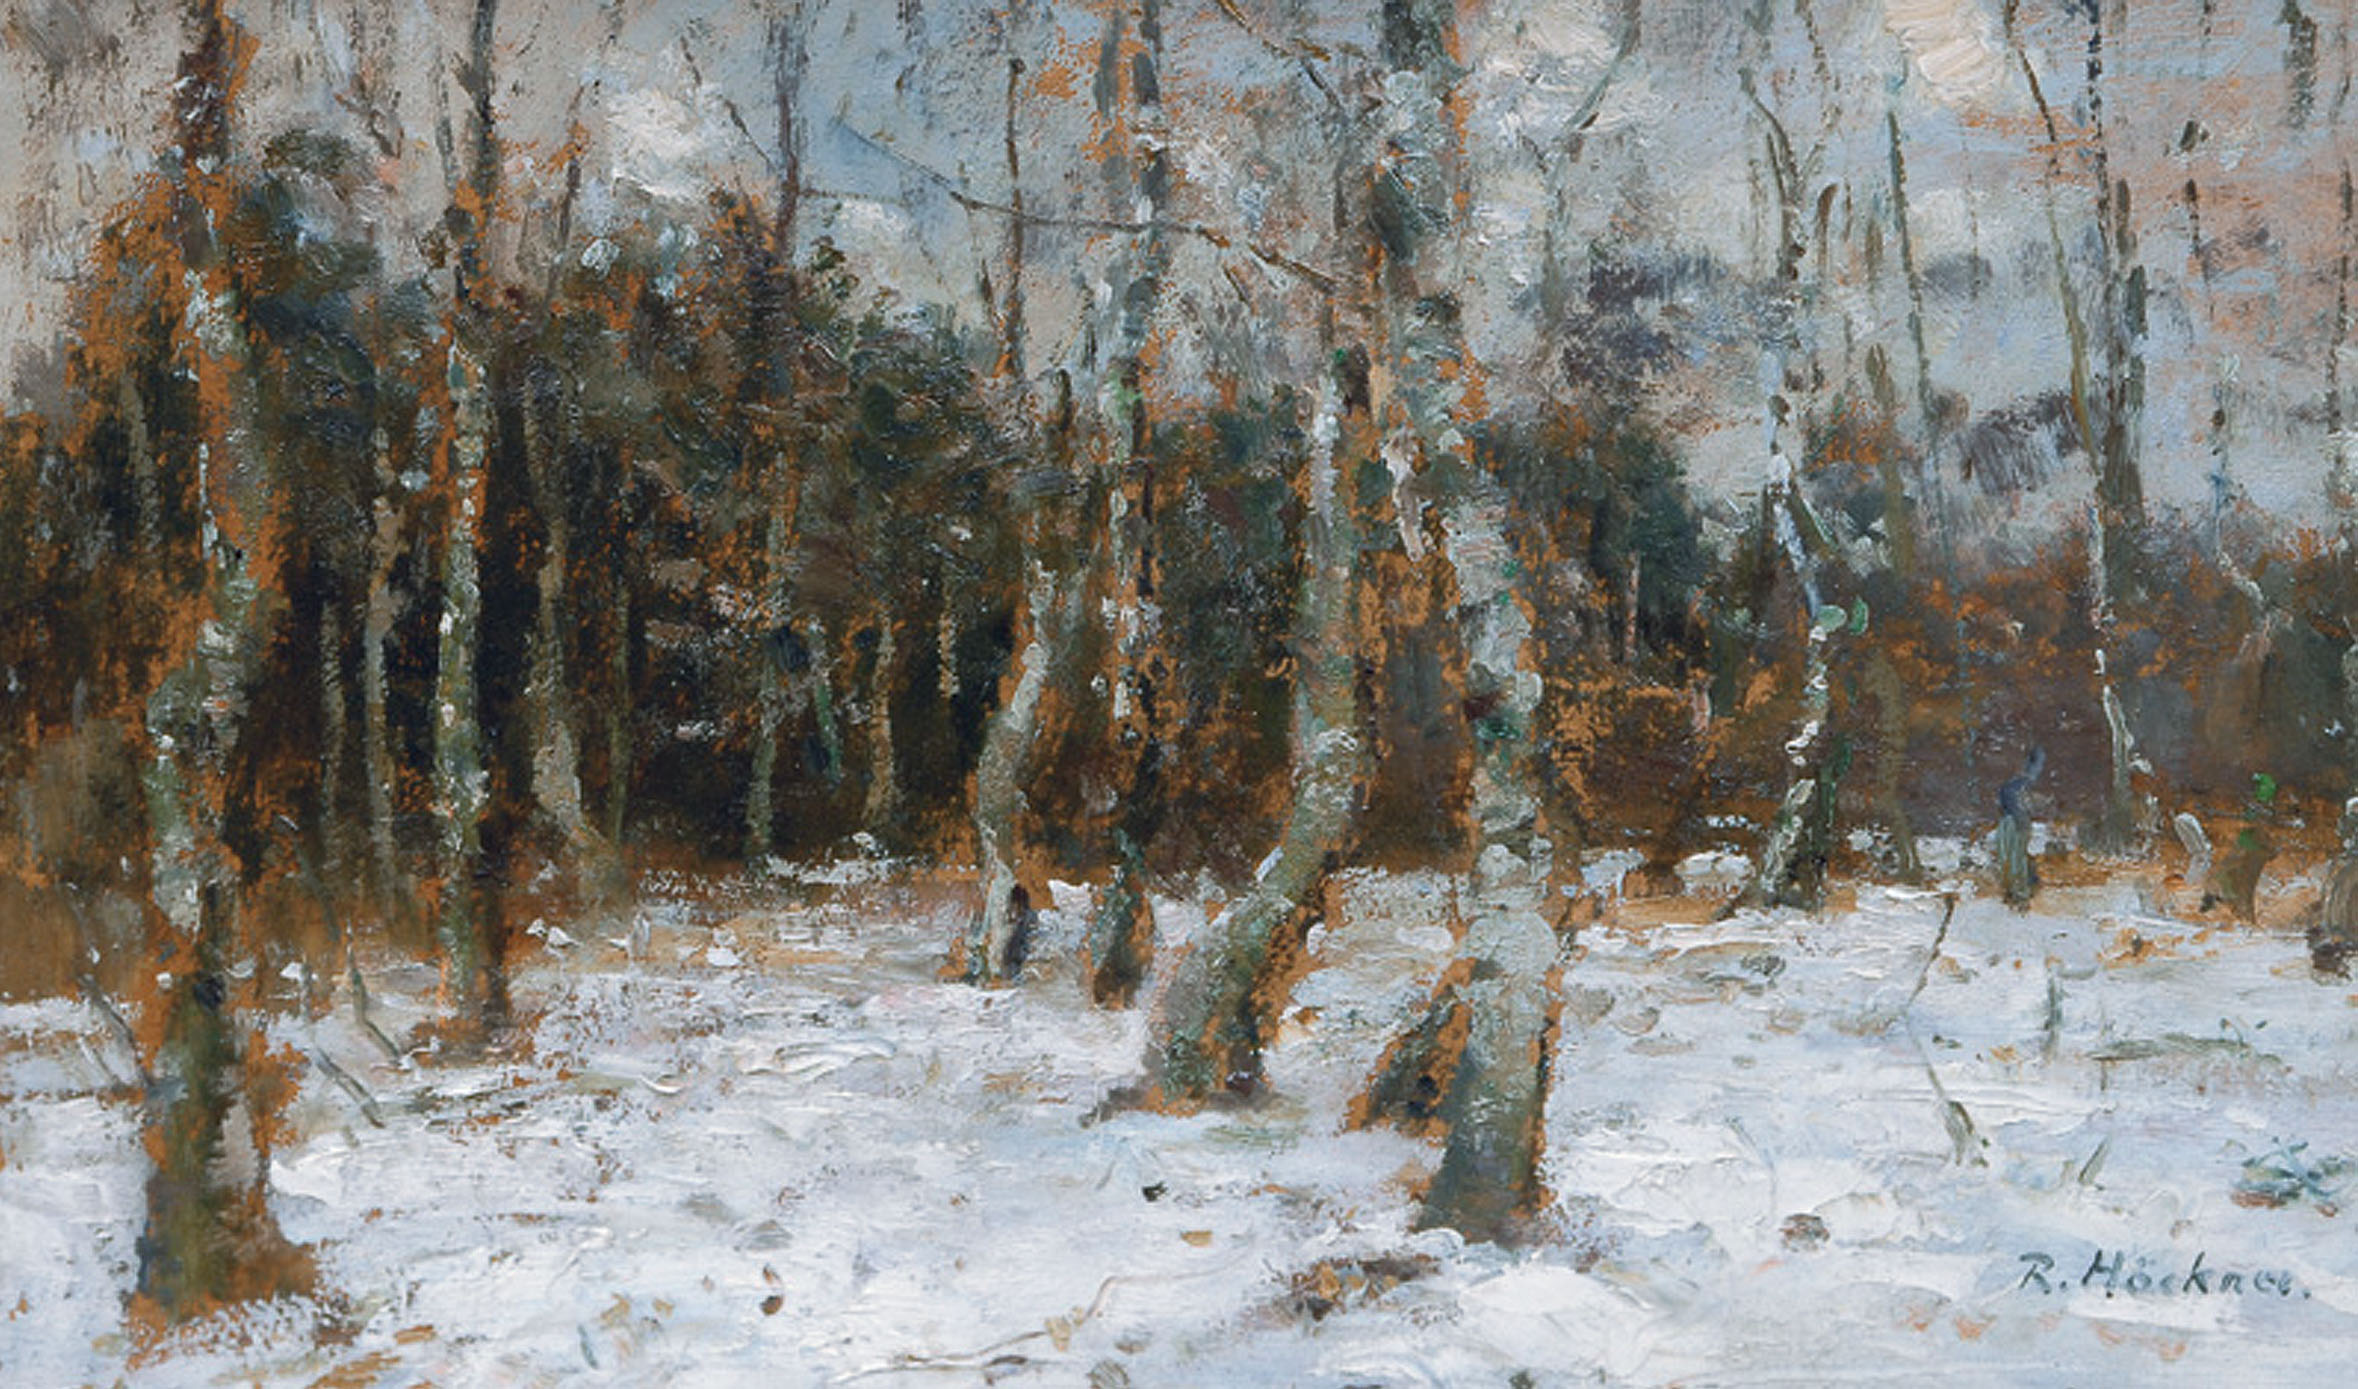 Birch forest in the winter